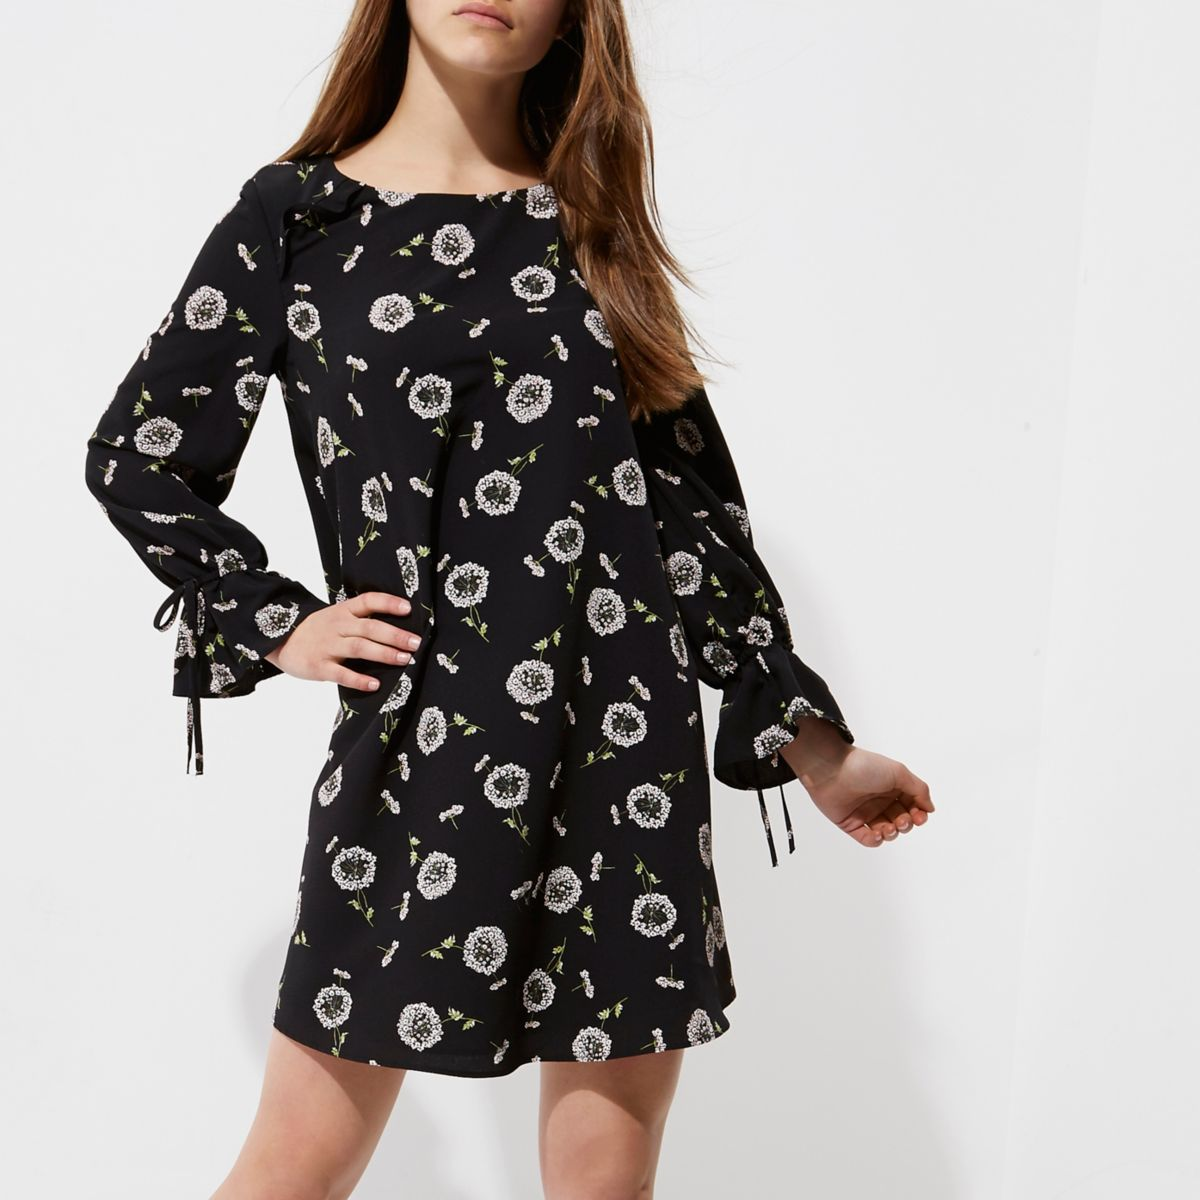 Petite black floral long sleeve smock dress